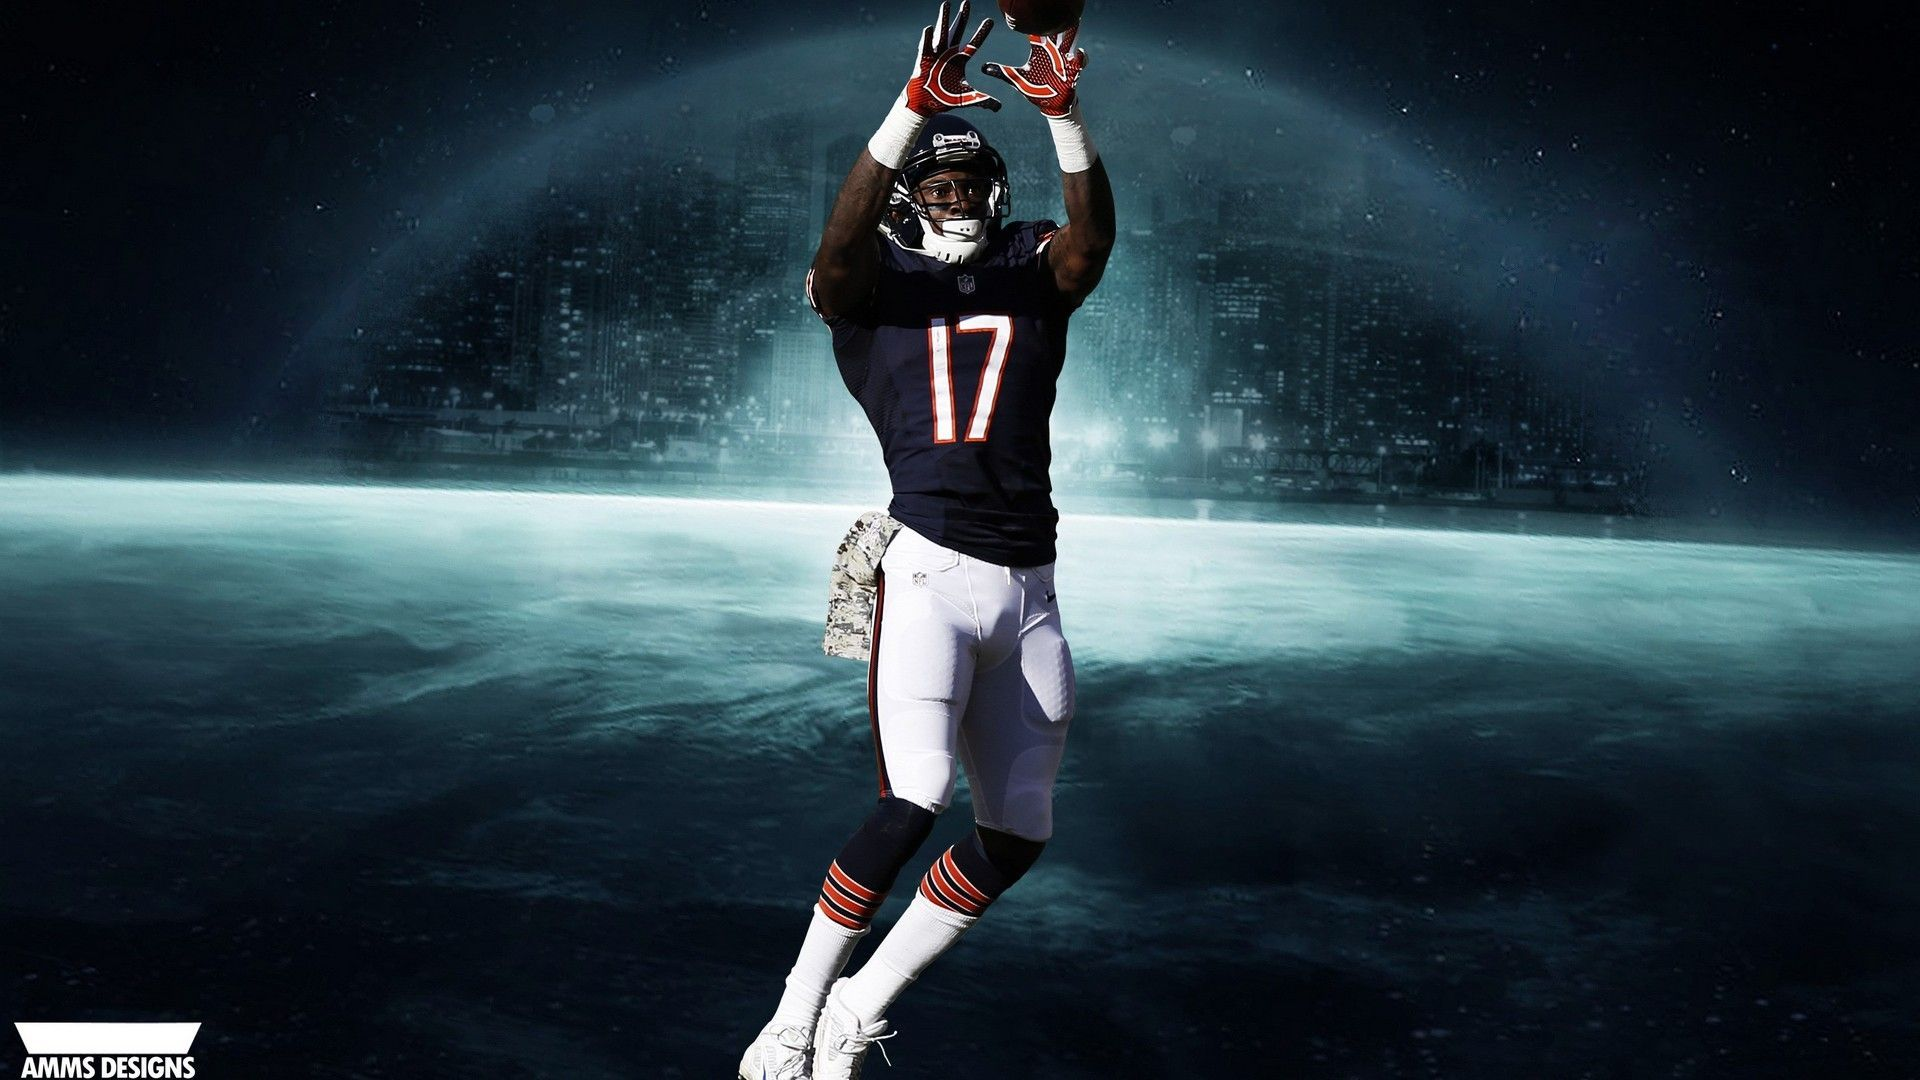 Chicago Sports Wallpaper Iphone 6: Chicago Bears NFL Wallpaper HD